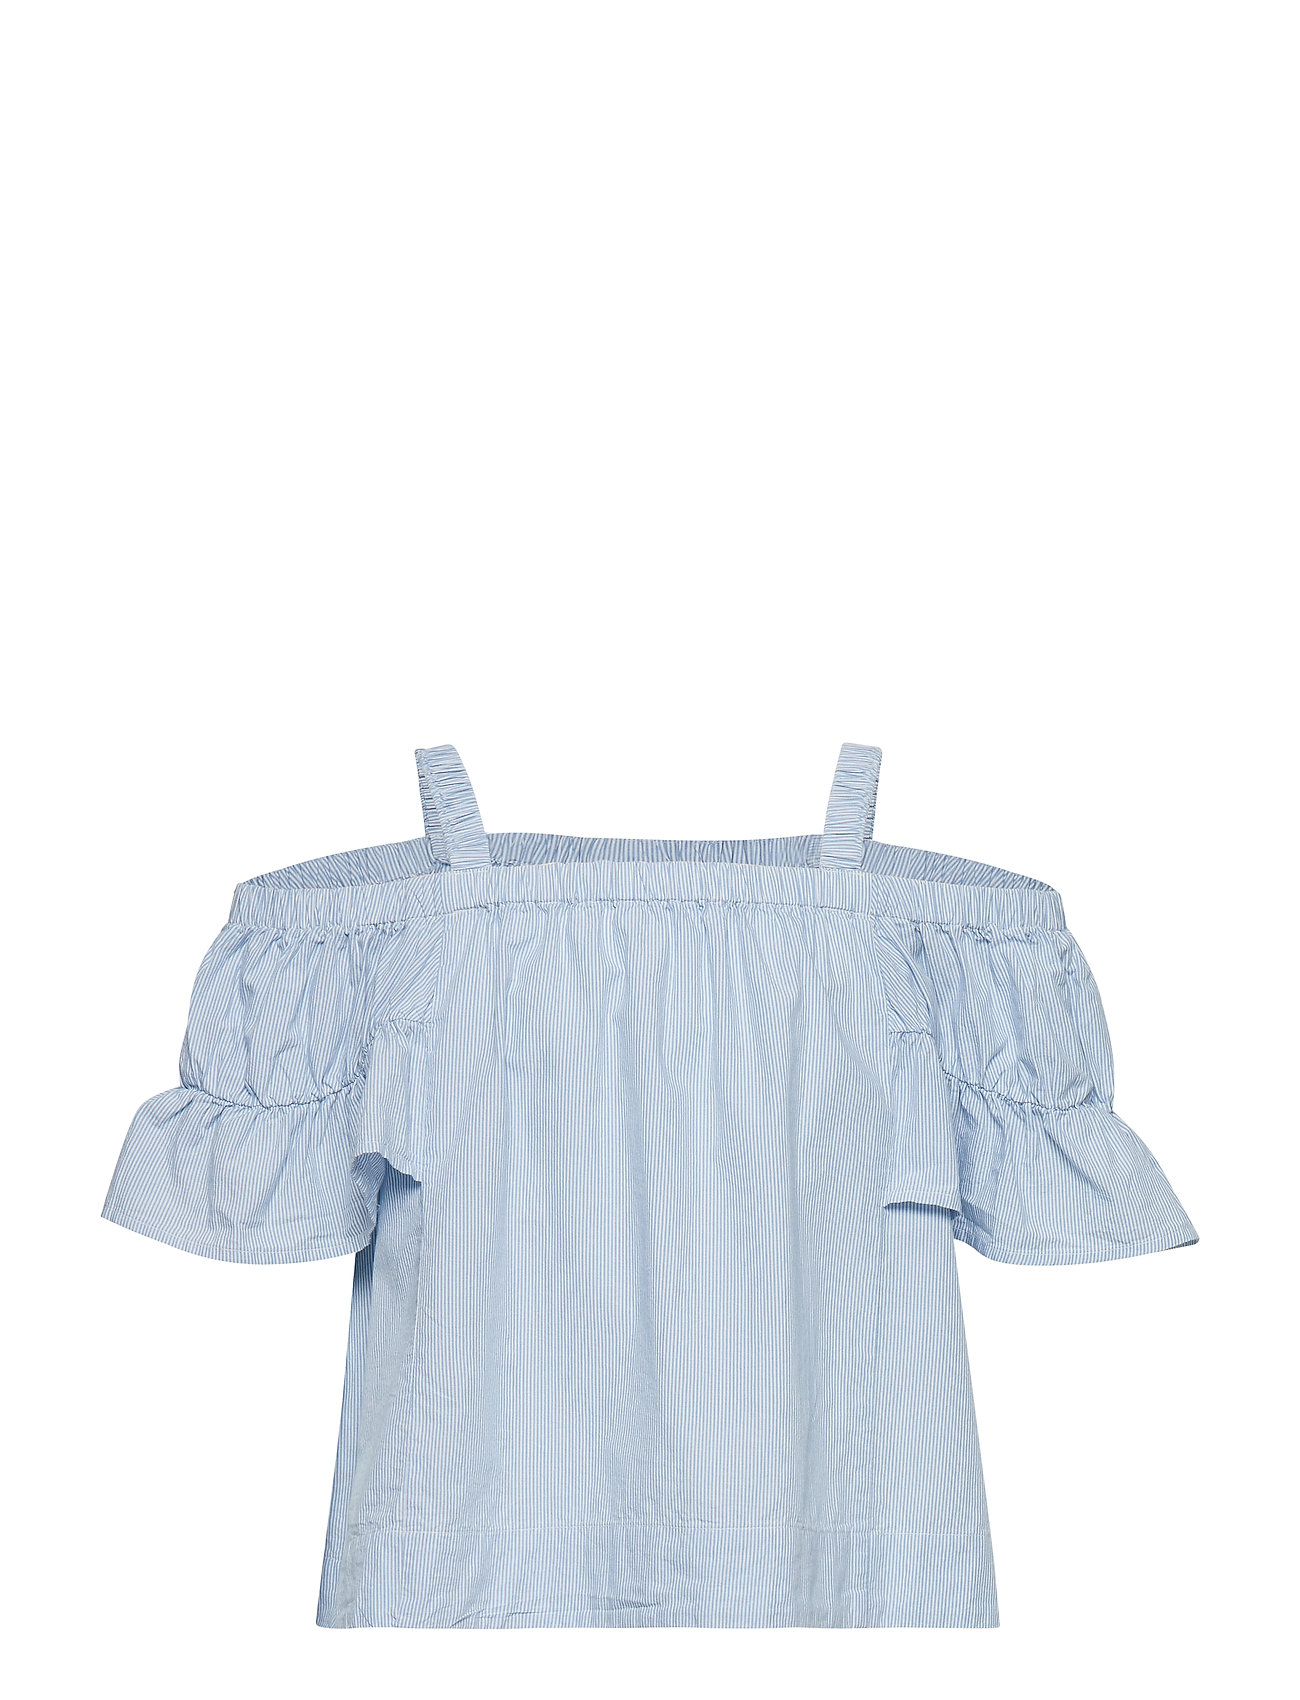 Polarn O. Pyret Top s/s woven School